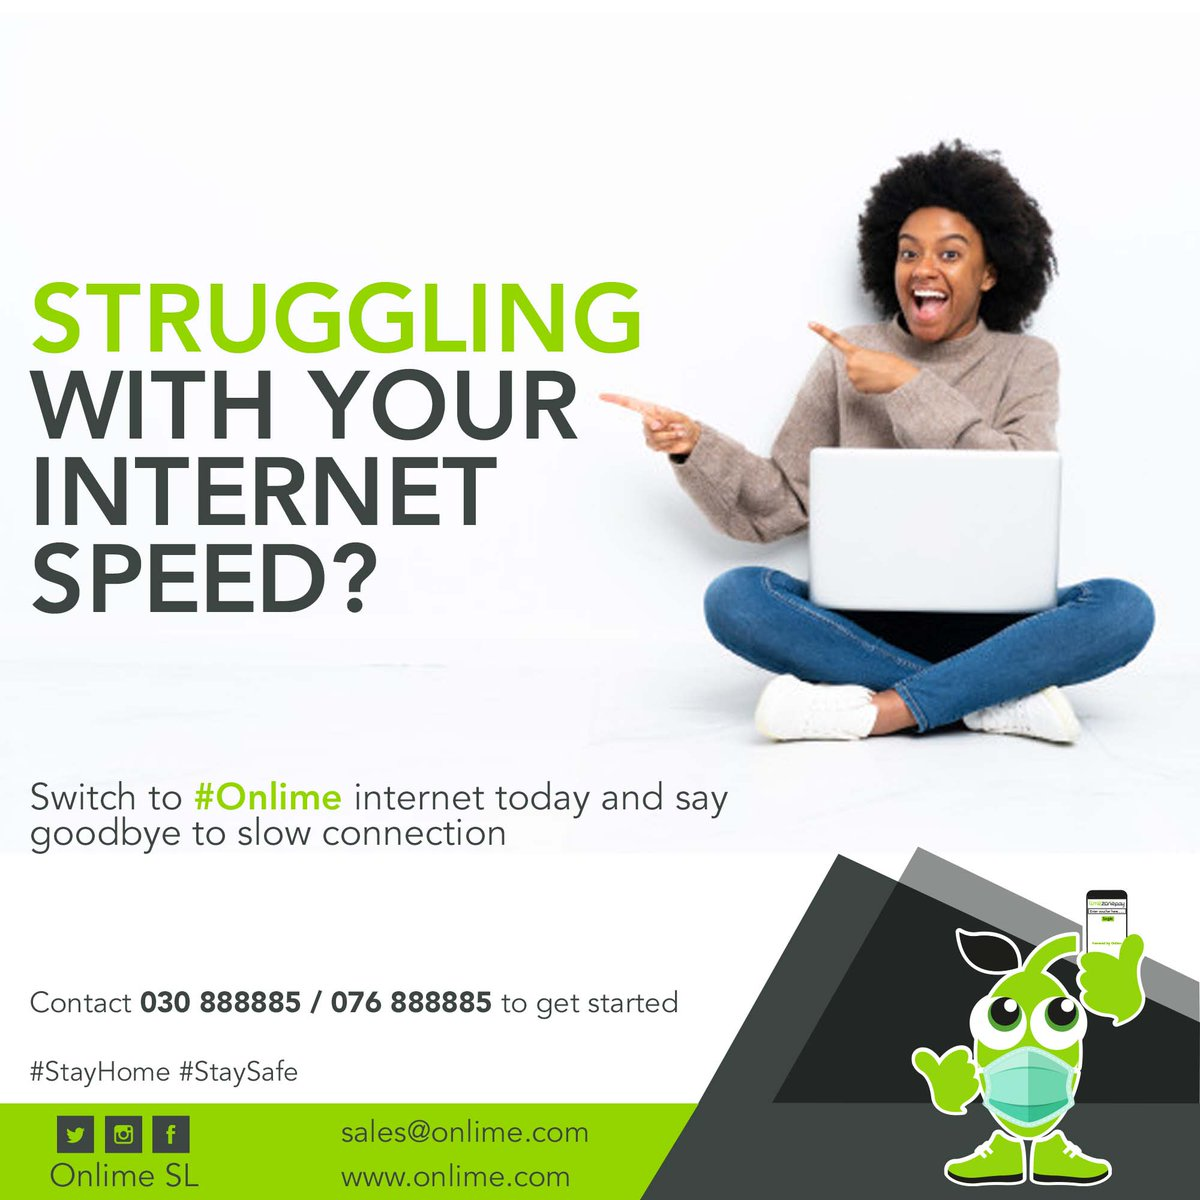 Switch to #onlime internet today and say goodbye to slow connection. Enjoy uninterrupted streaming at Super-Fast Speeds with #OnlimeInternet Call 076 888885 / 030 888885 or email sales@onlime.sl for more info.#SierraLeone #Freetown #SaloneTwitter https://t.co/tucXP8Tvm1